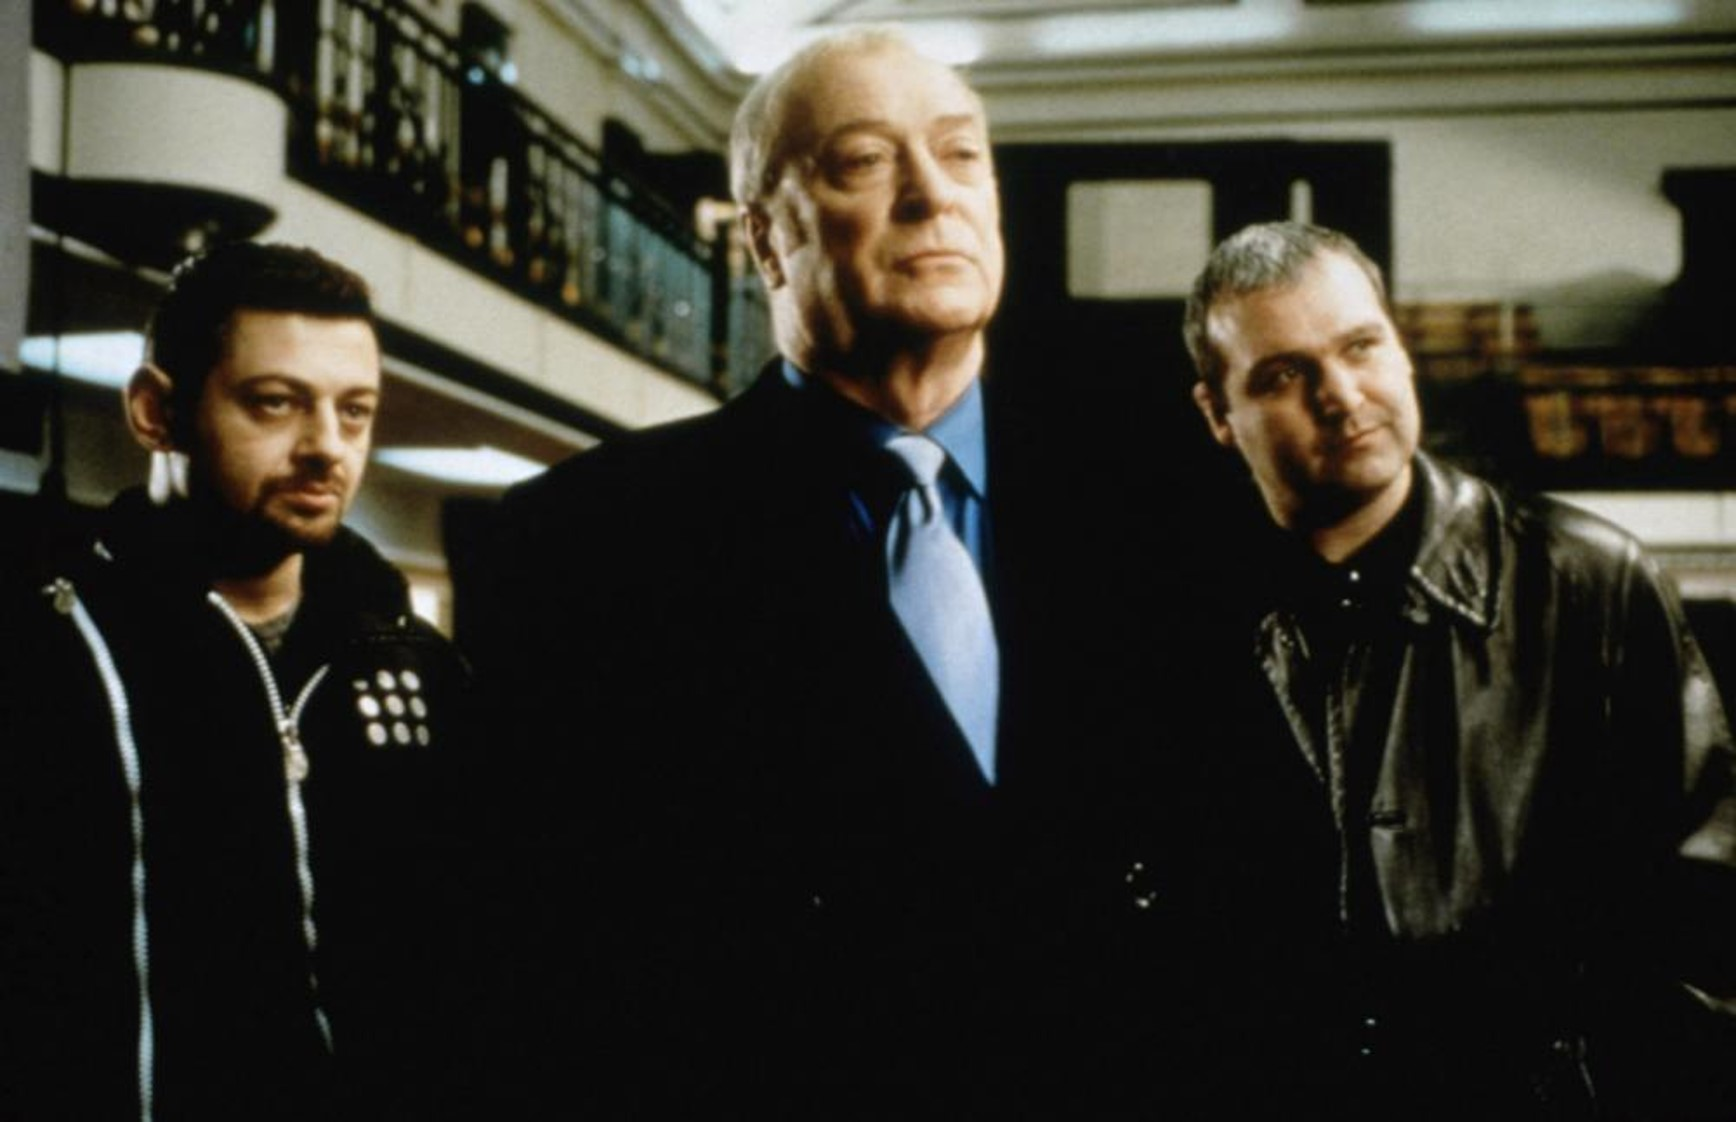 Michael Caine, Frank Harper, and Andy Serkis in Shiner (2000)